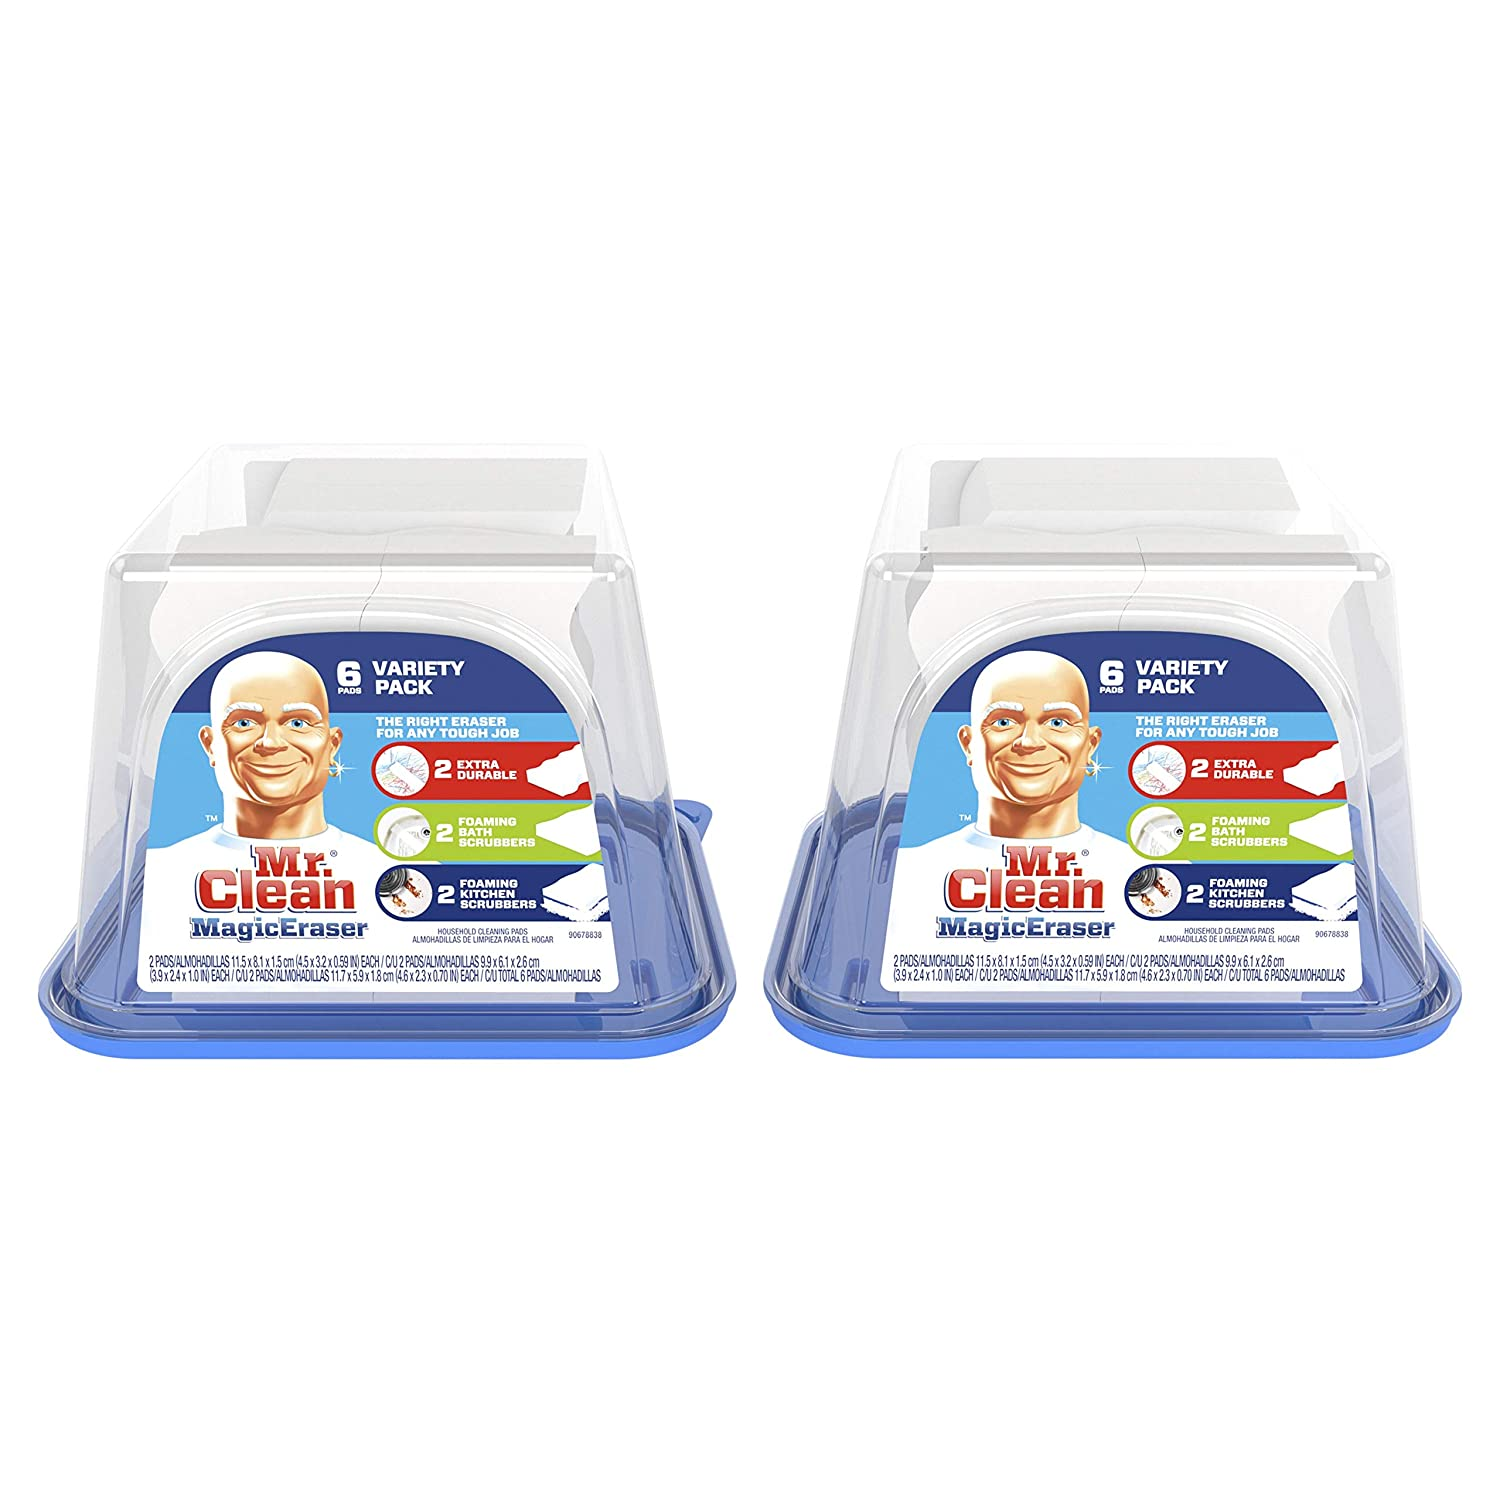 Mr. Clean Magic Eraser Variety Pack, Cleaning Pads with Durafoam, 6ct Twinpack